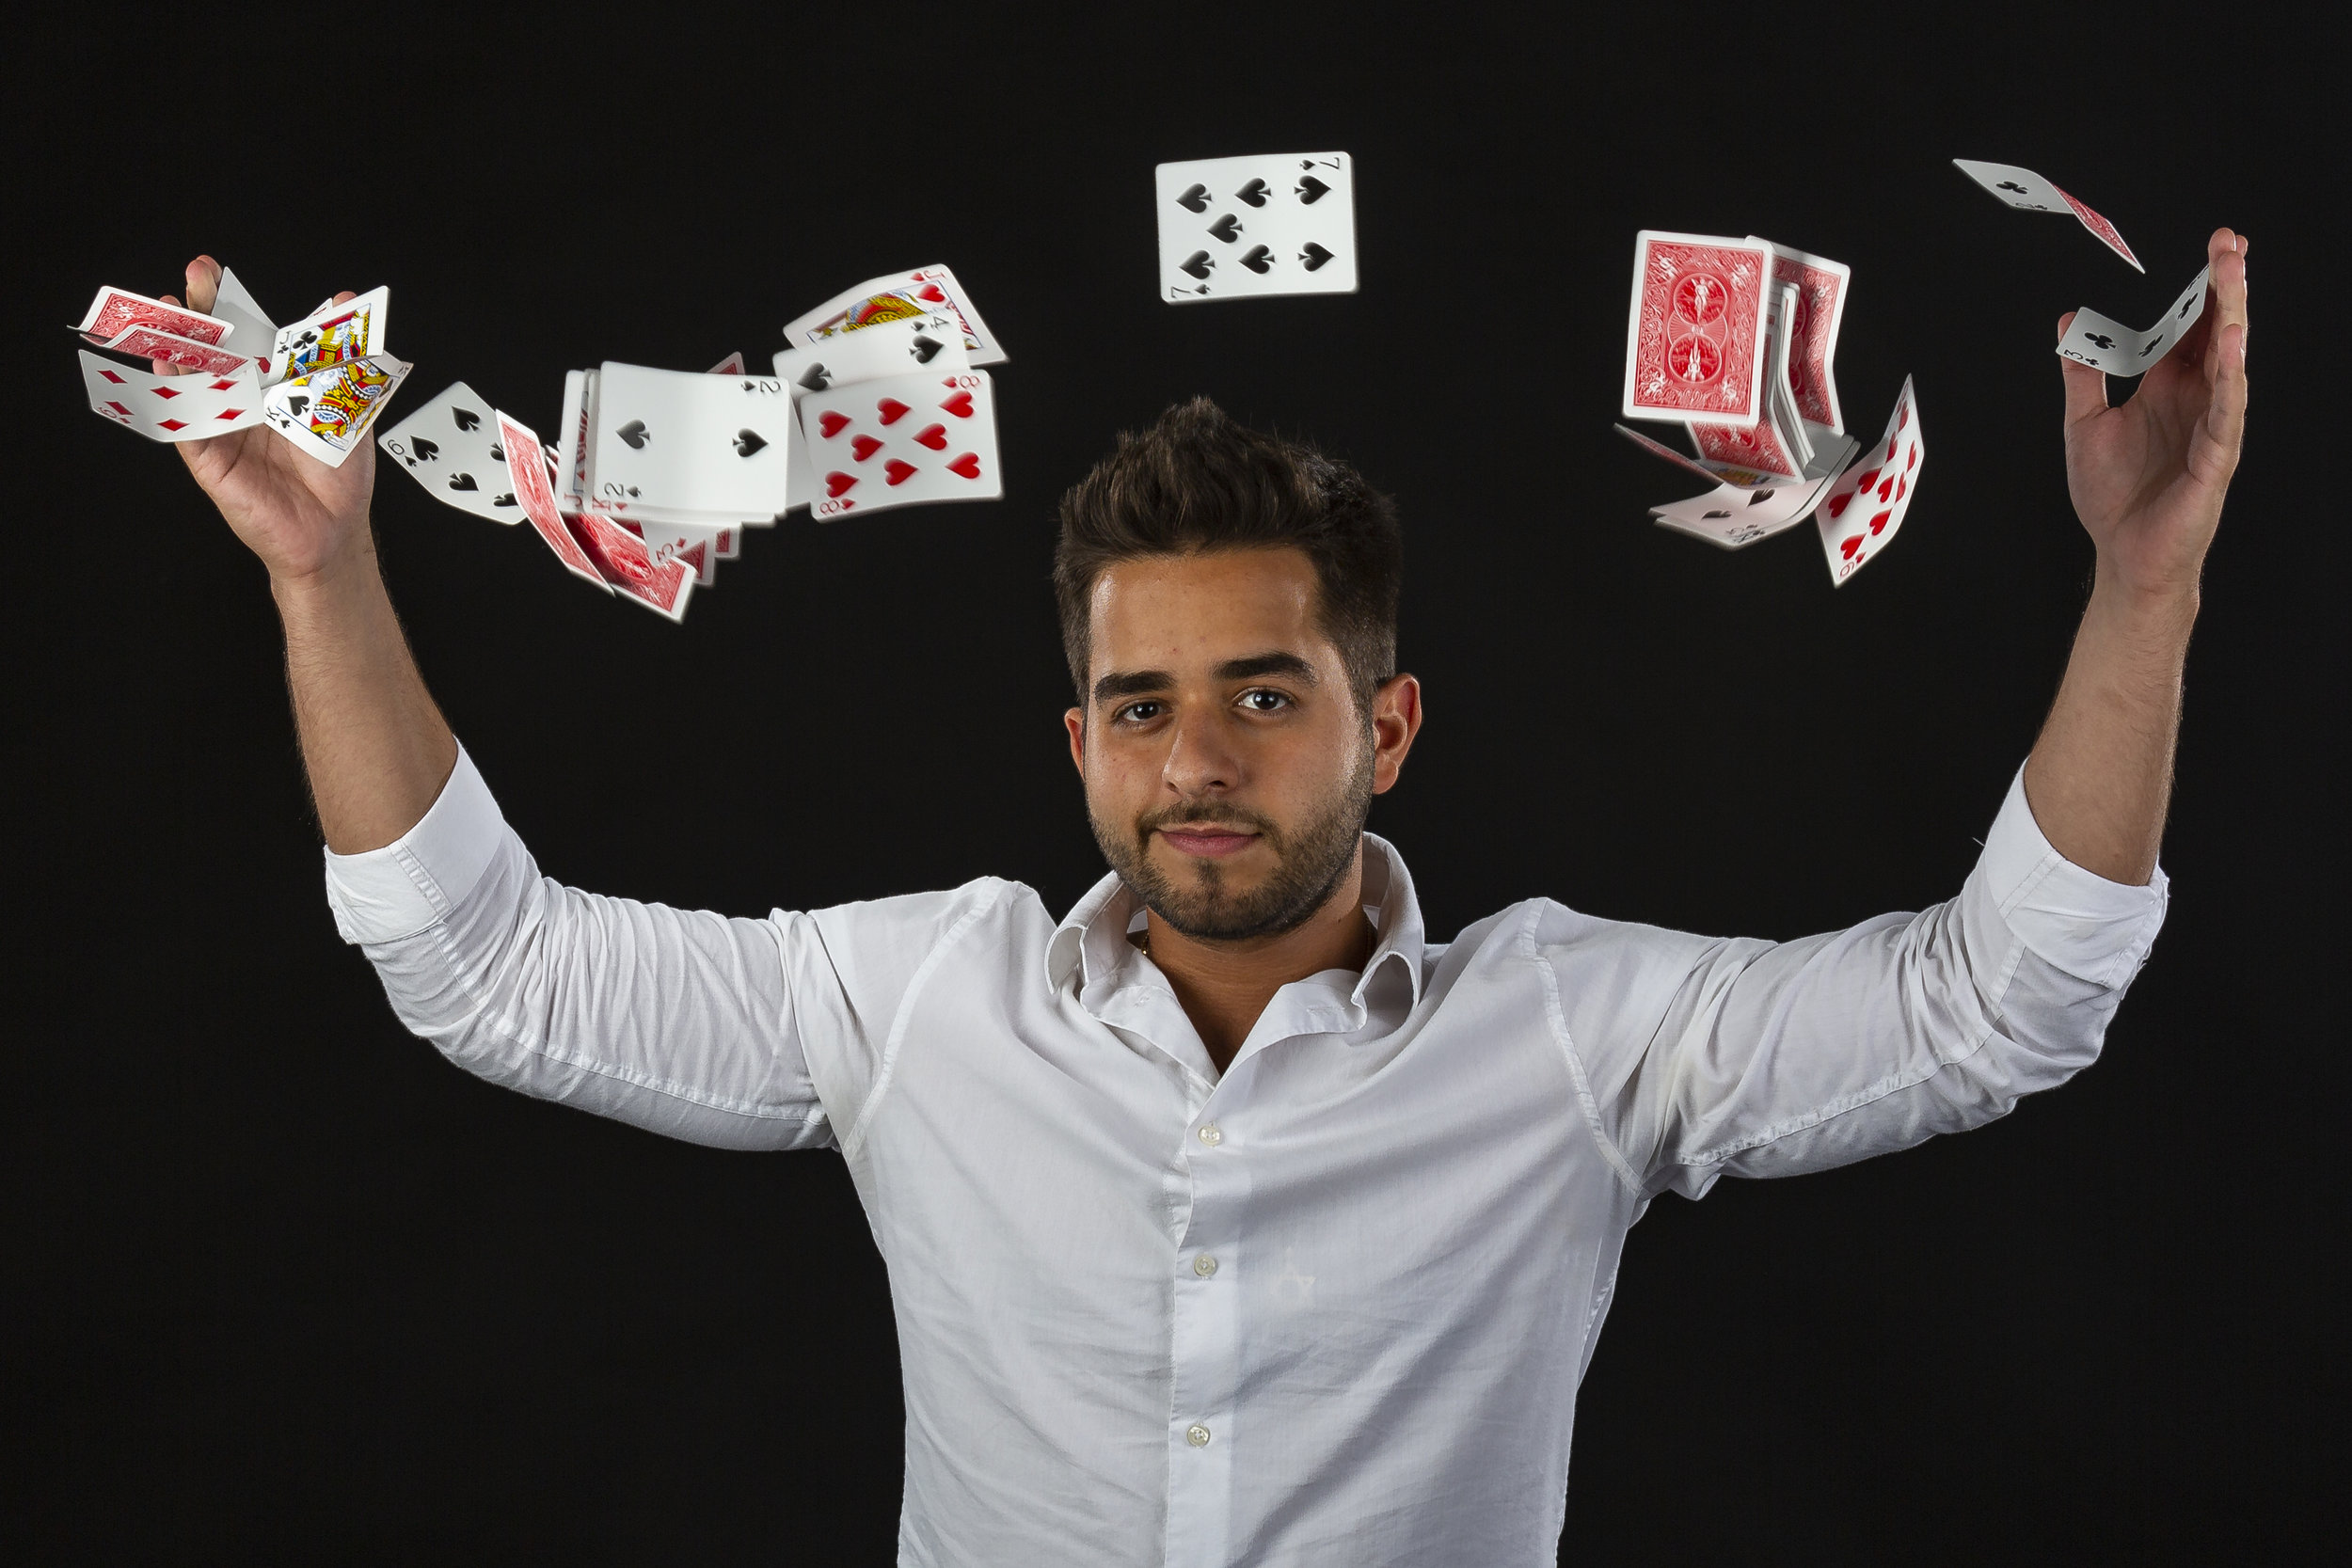 Magician and social media influencer Michel Gallero visits the Miami Herald and el Nuevo Herald offices in Doral on Monday, July 23, 2018.